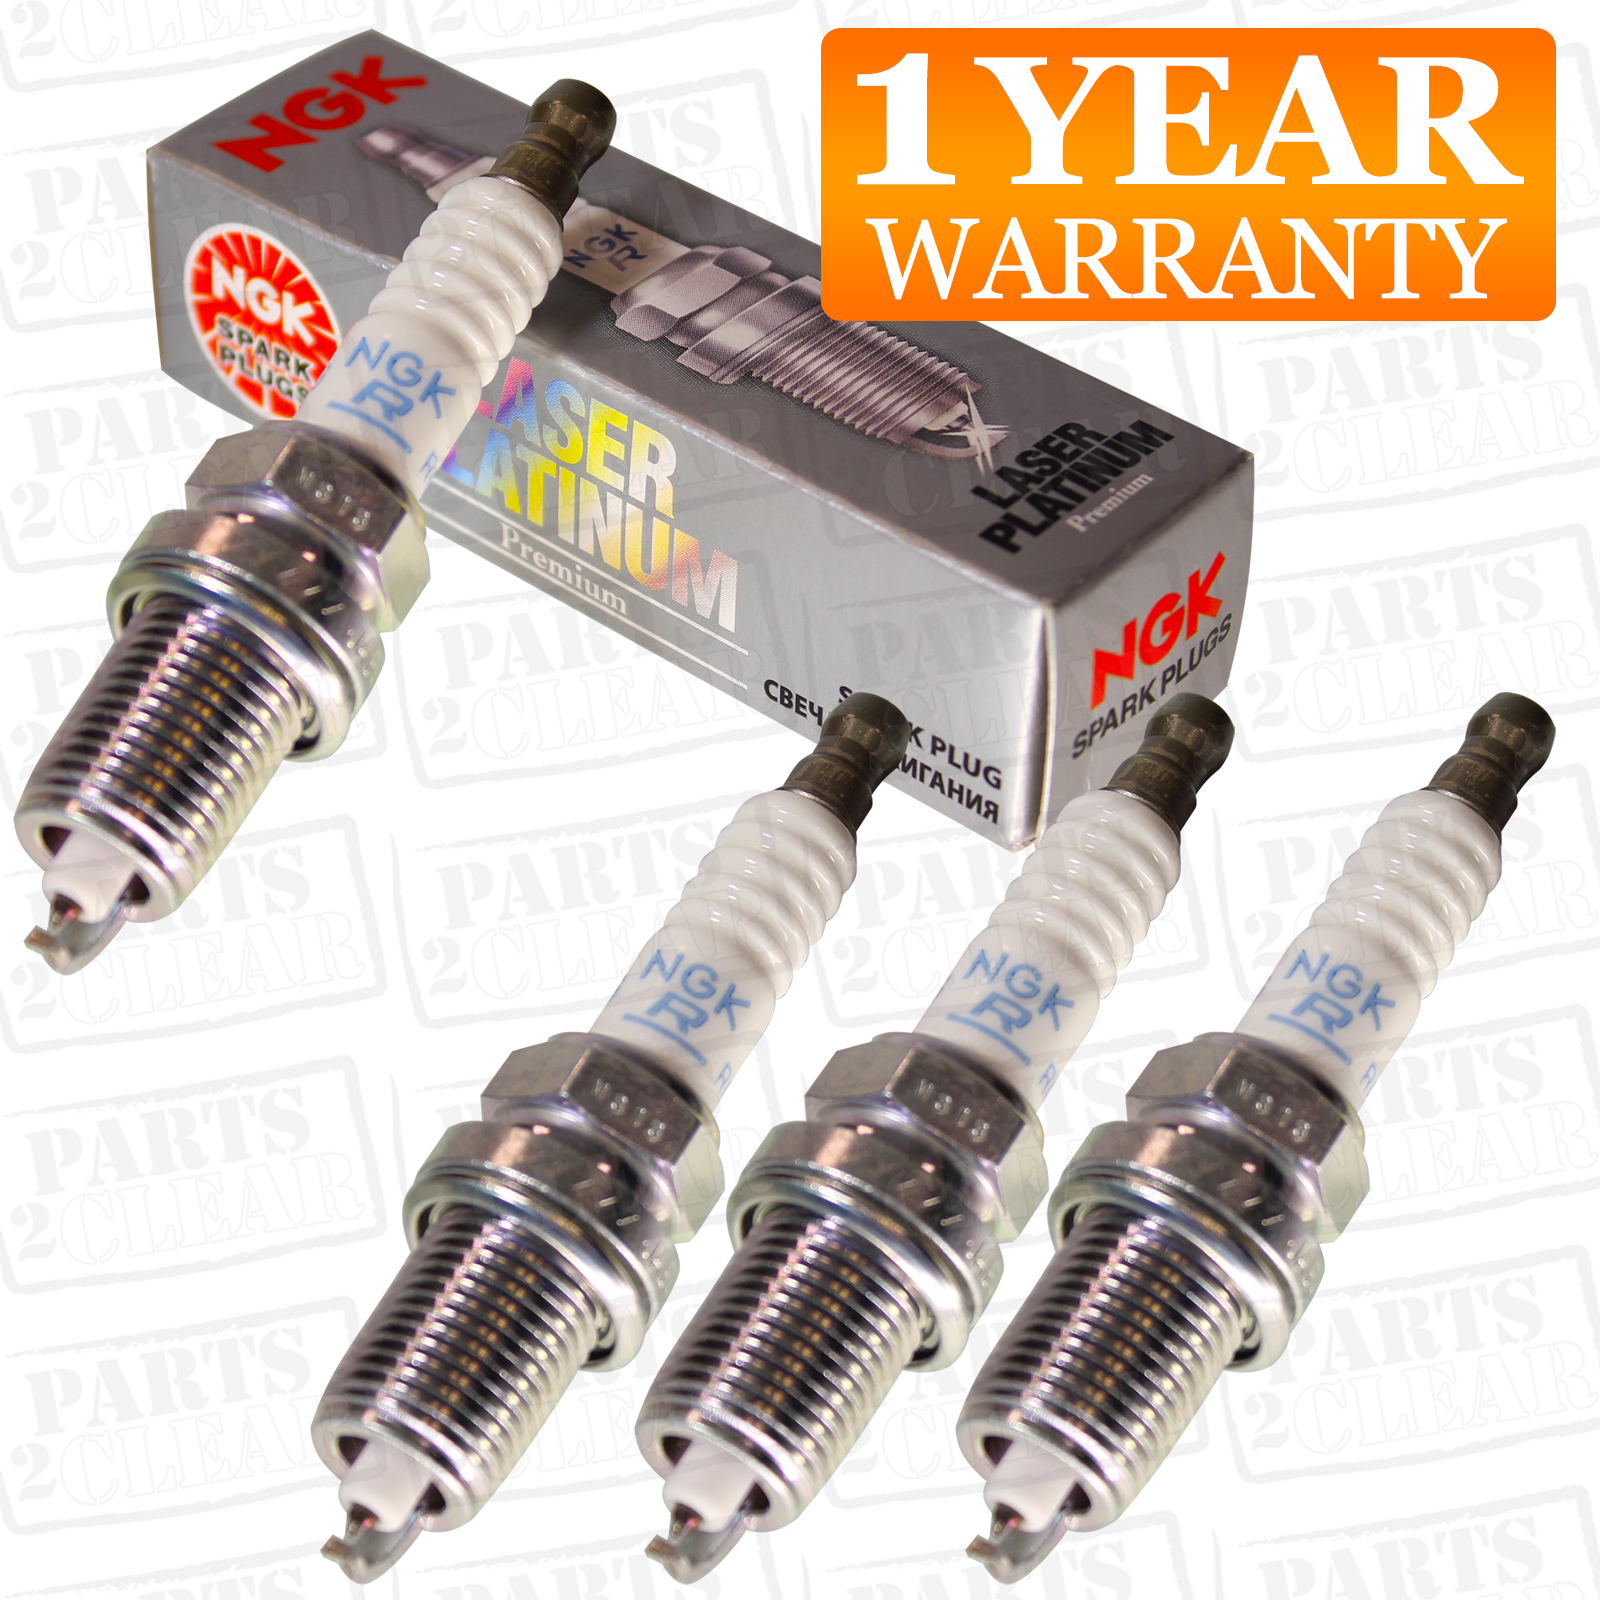 300zx Non Turbo Spark Plugs: NGK Laser Platinum 4x Ignition Spark Plug 4 Pack X4 For